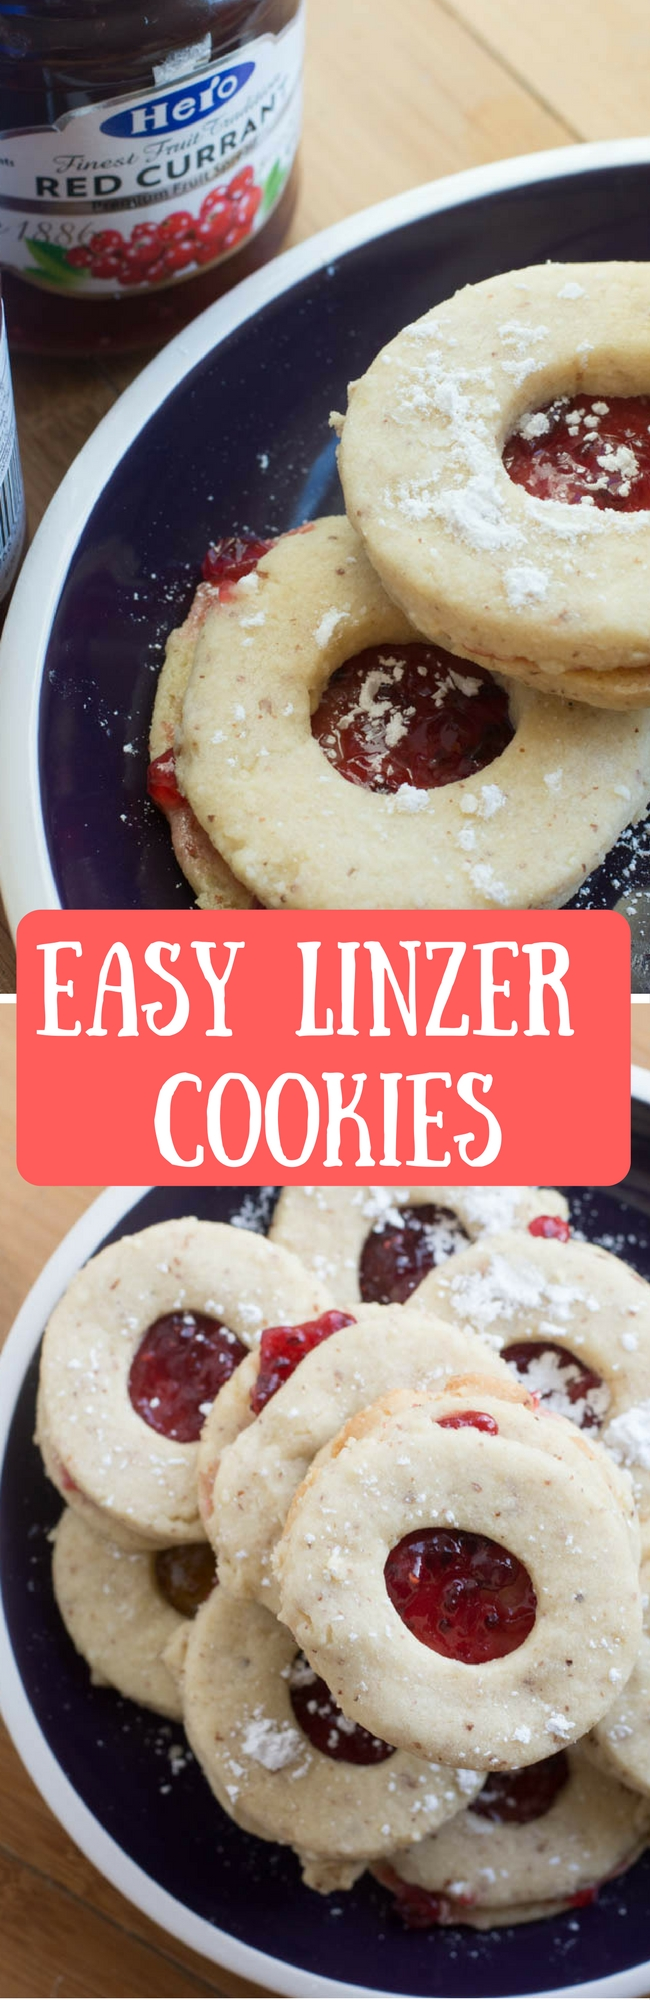 This is the best linzer cookie recipe! This is an easy recipe made with almonds and filled with a delicate layer of jam. It's the perfect holiday cookie recipe that will get everyone baking this year!